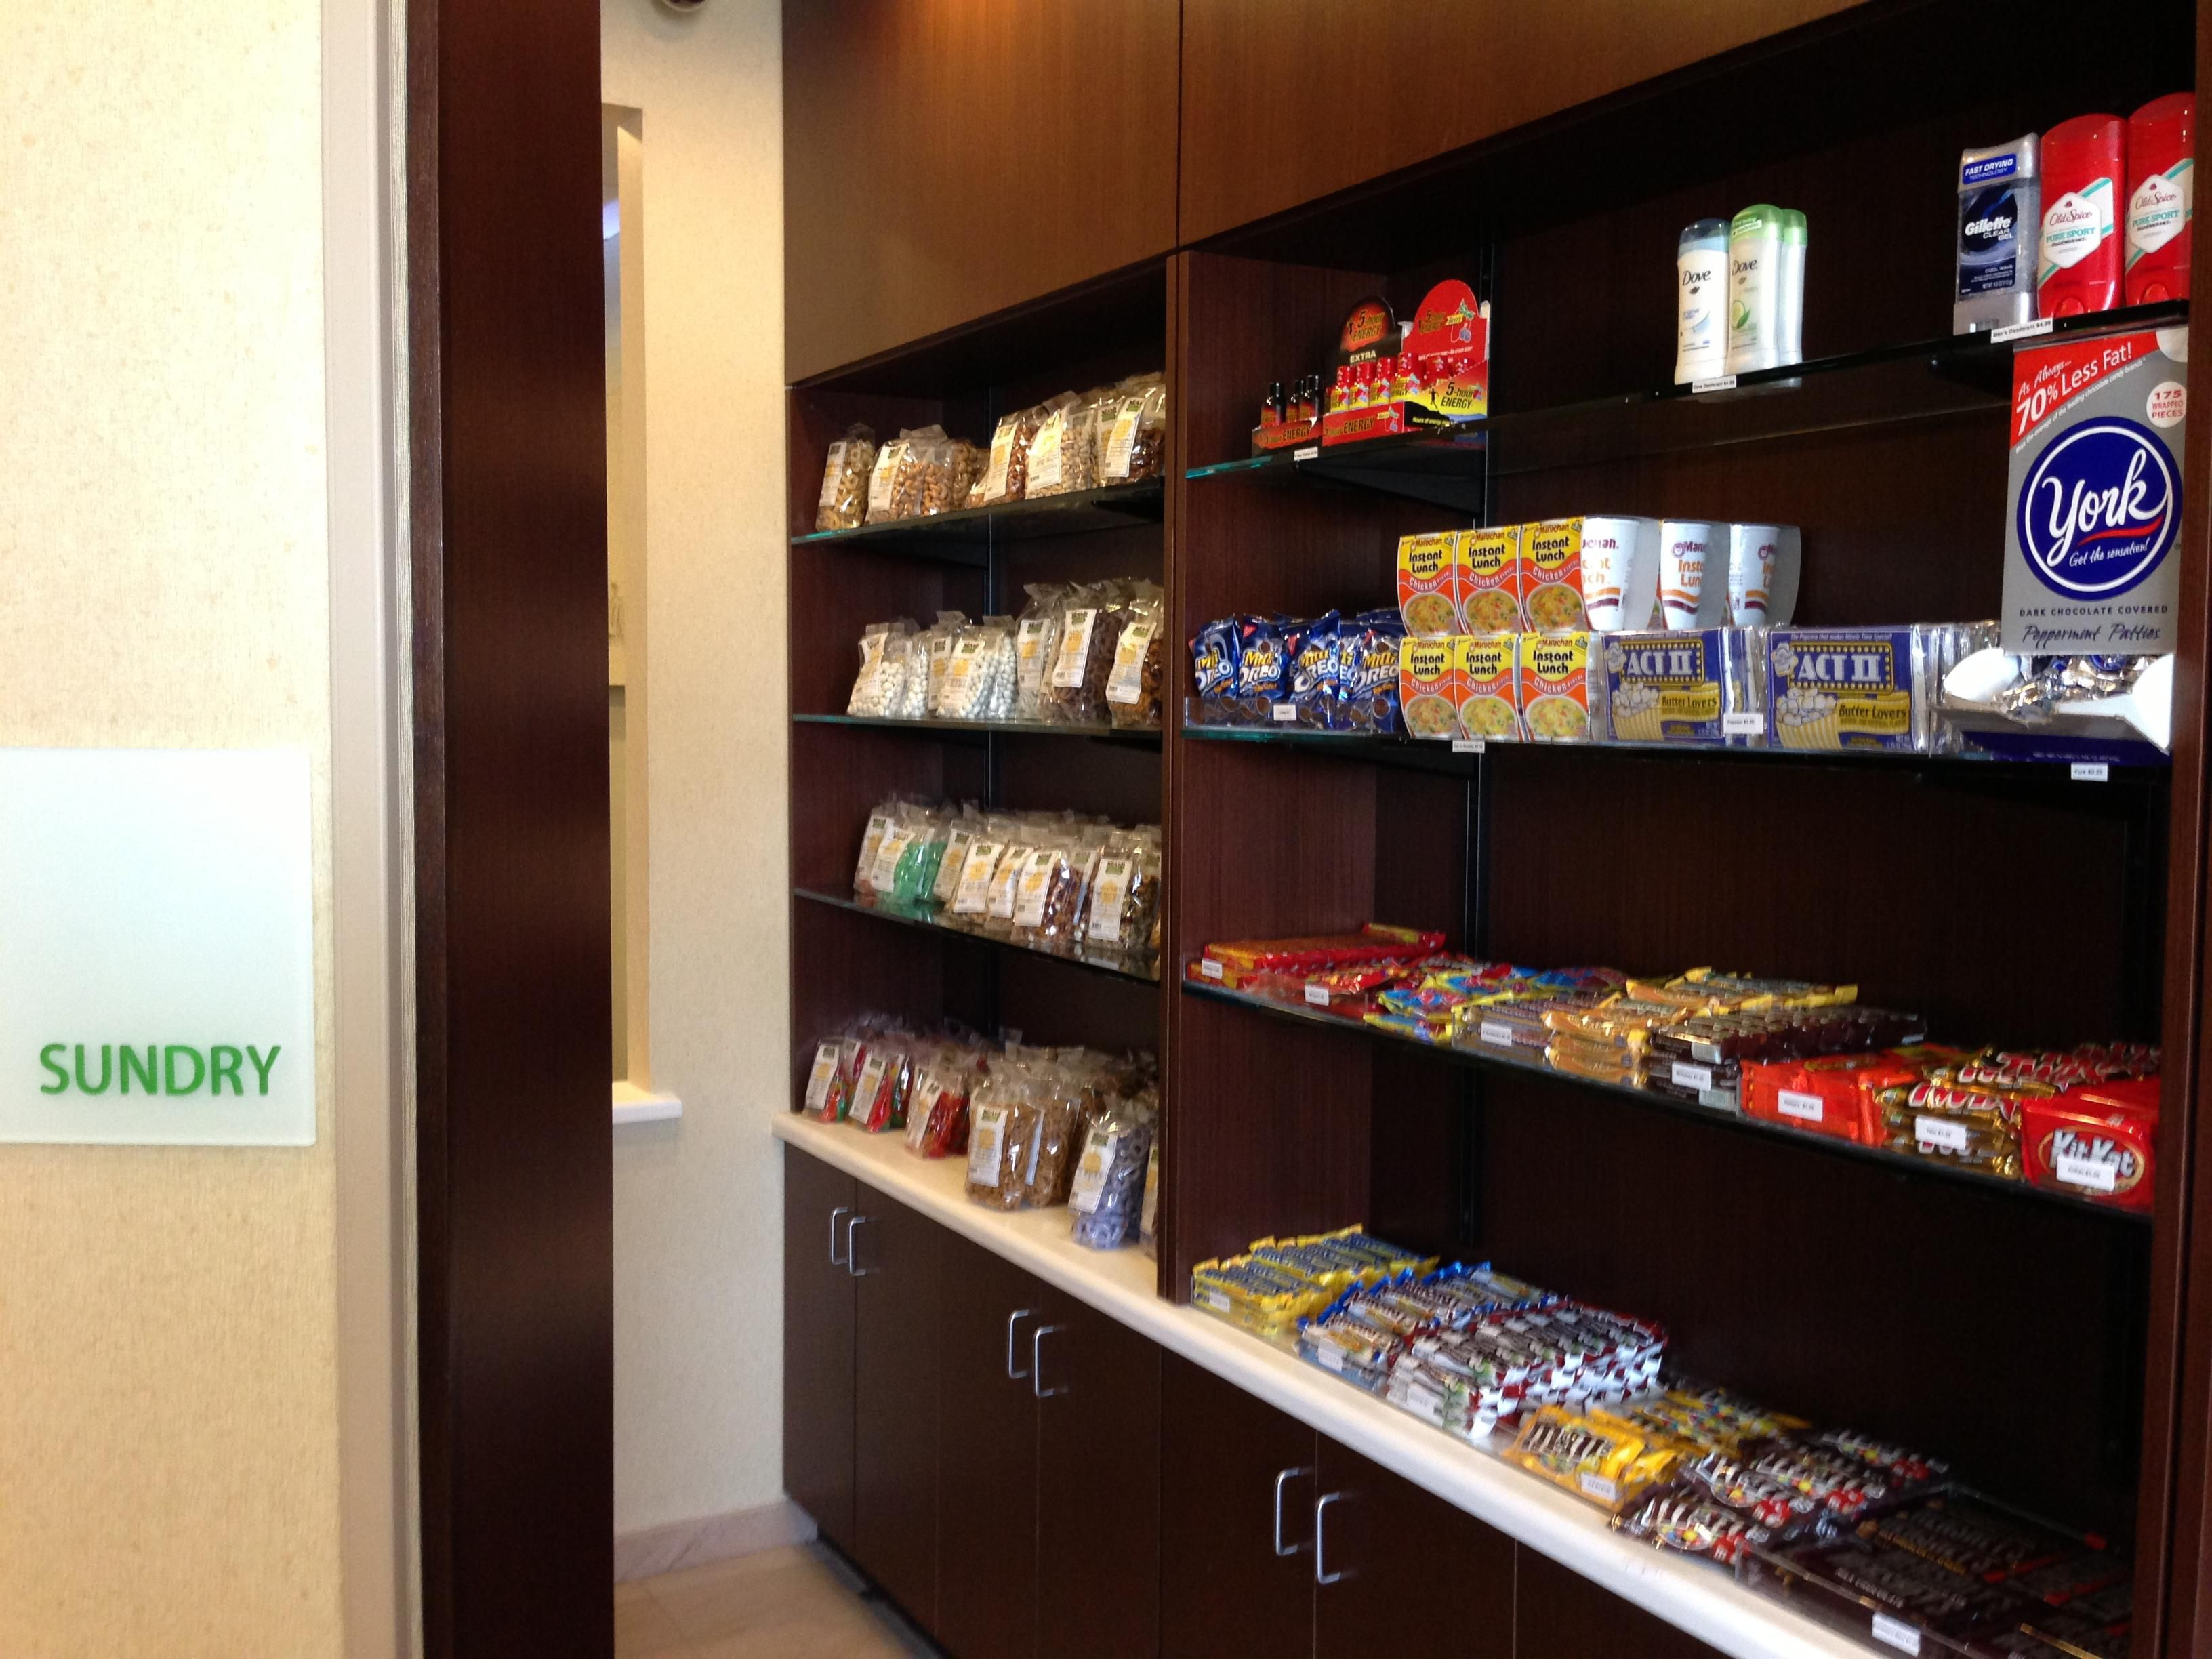 Our 24 hour Sundry is stocked with snacks and personal care items!